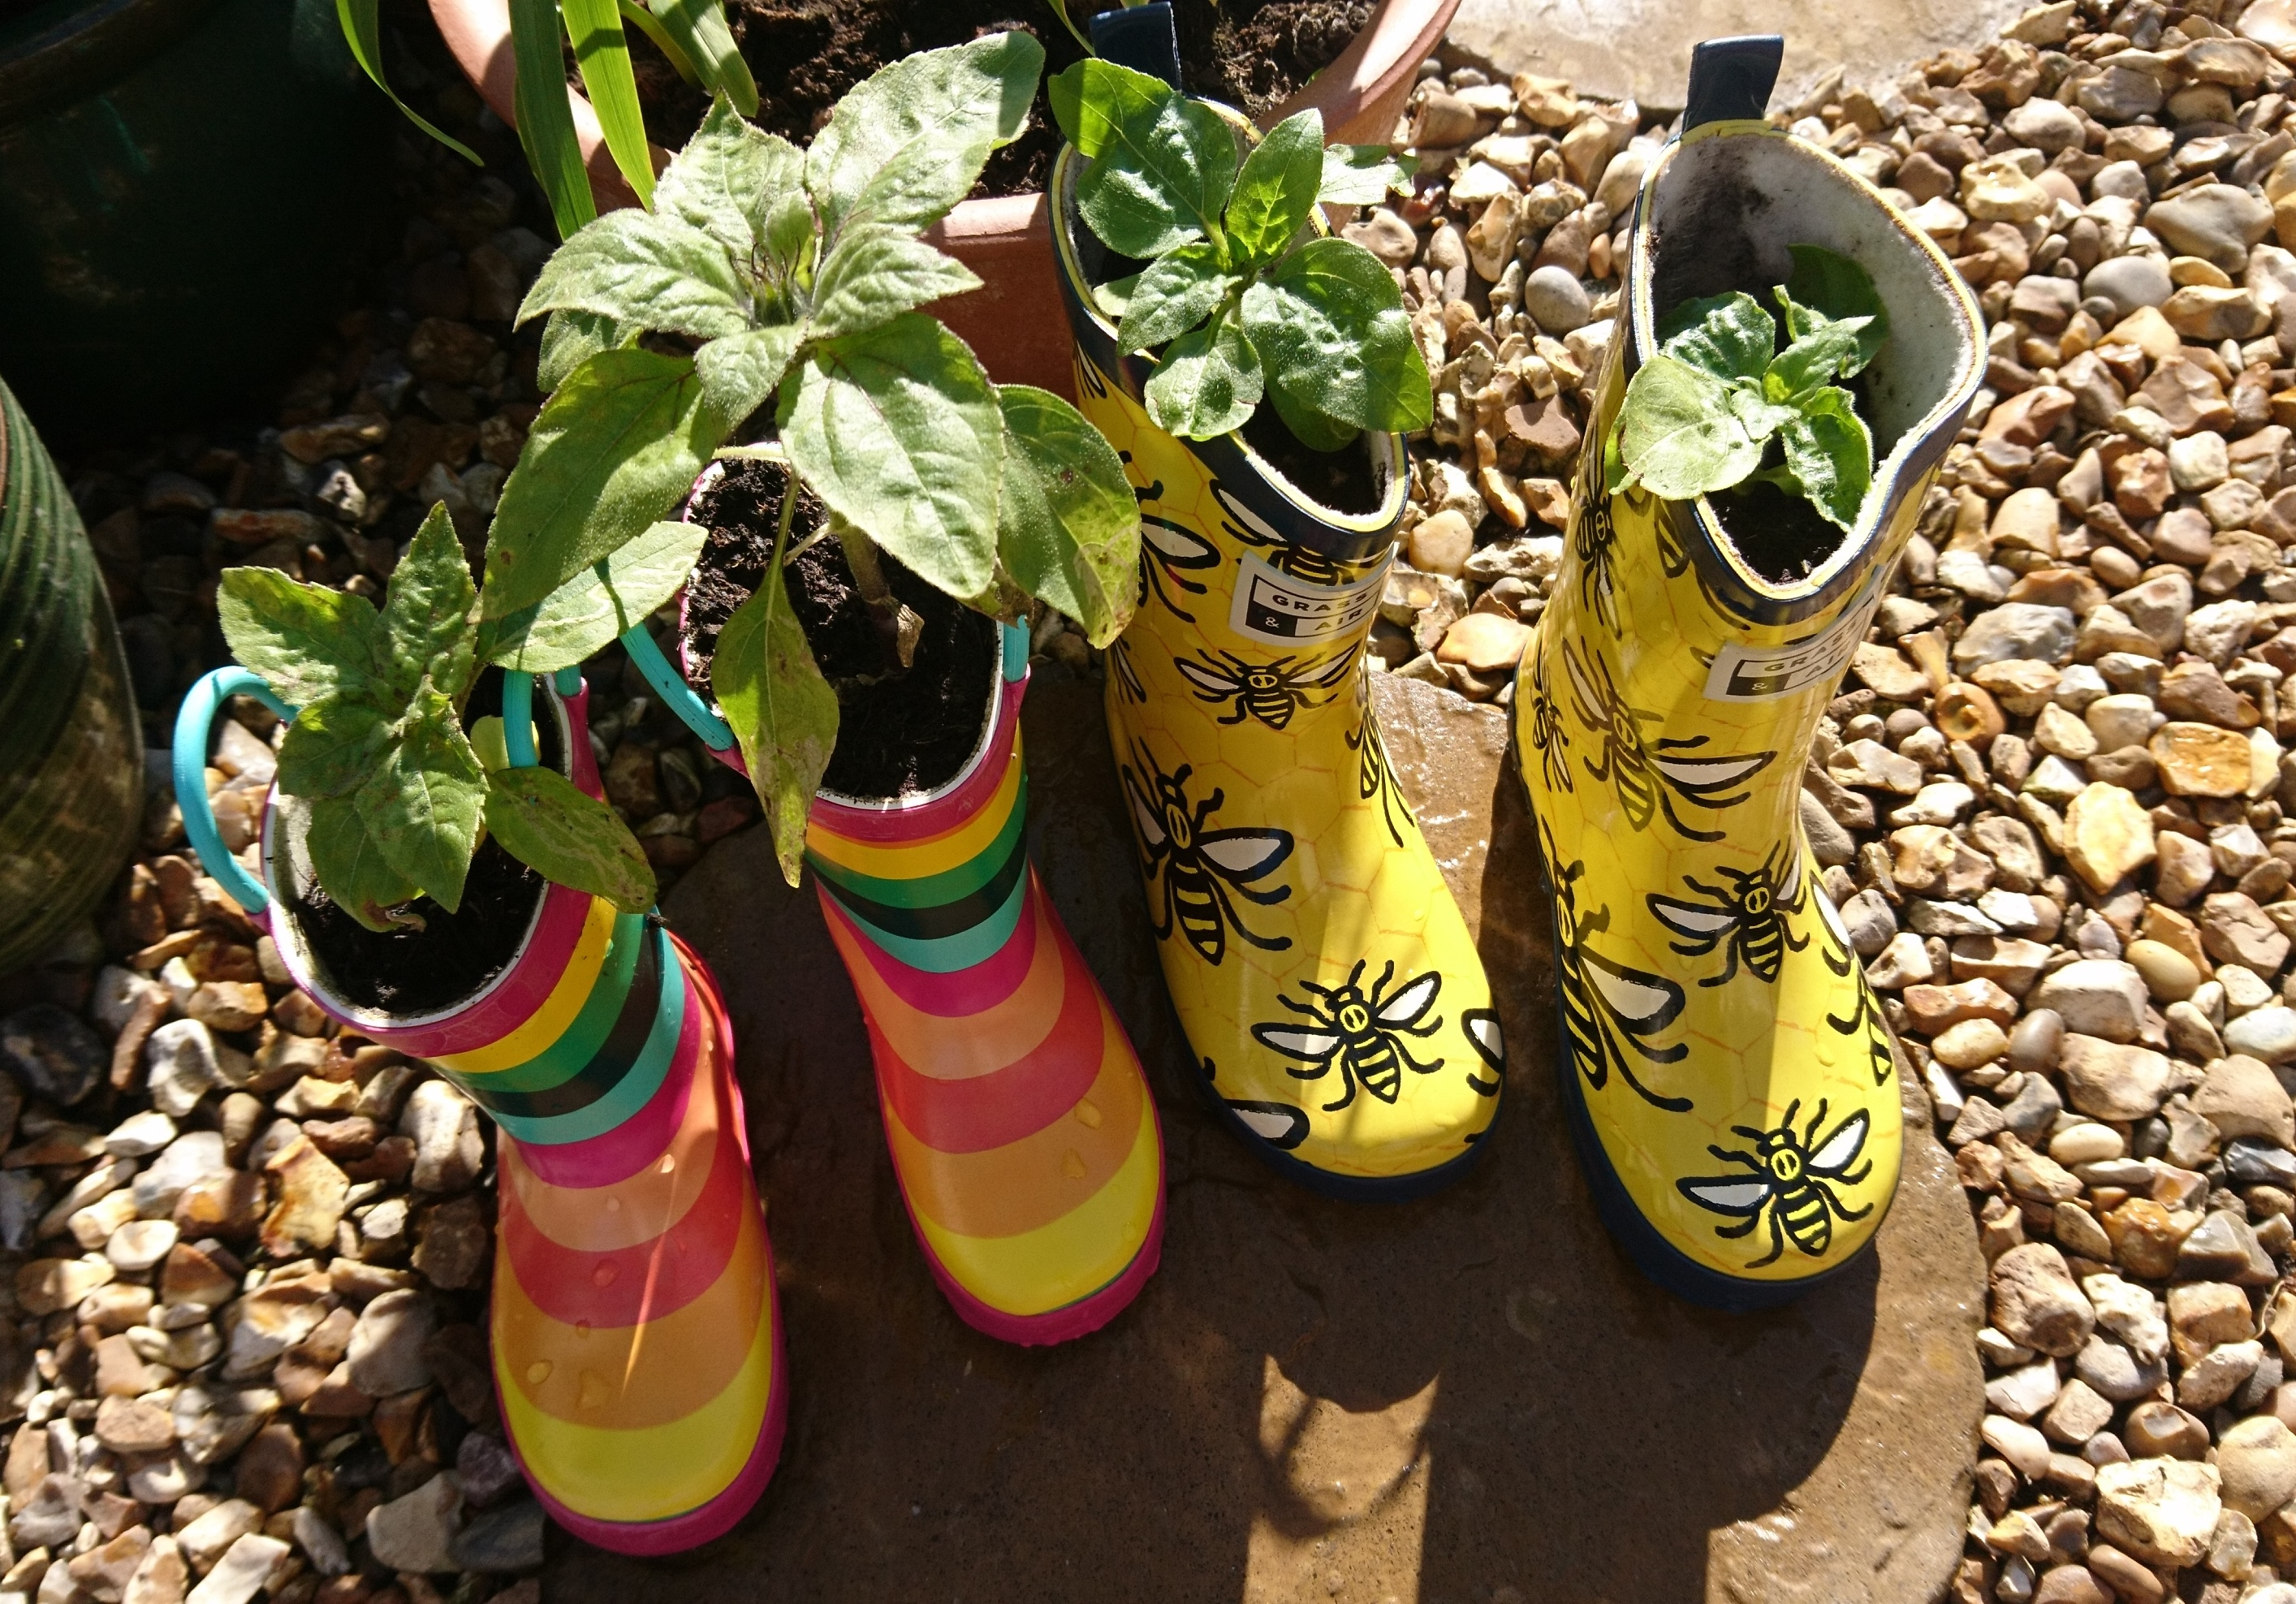 Dwarf sunflowers planted in wellington boots.